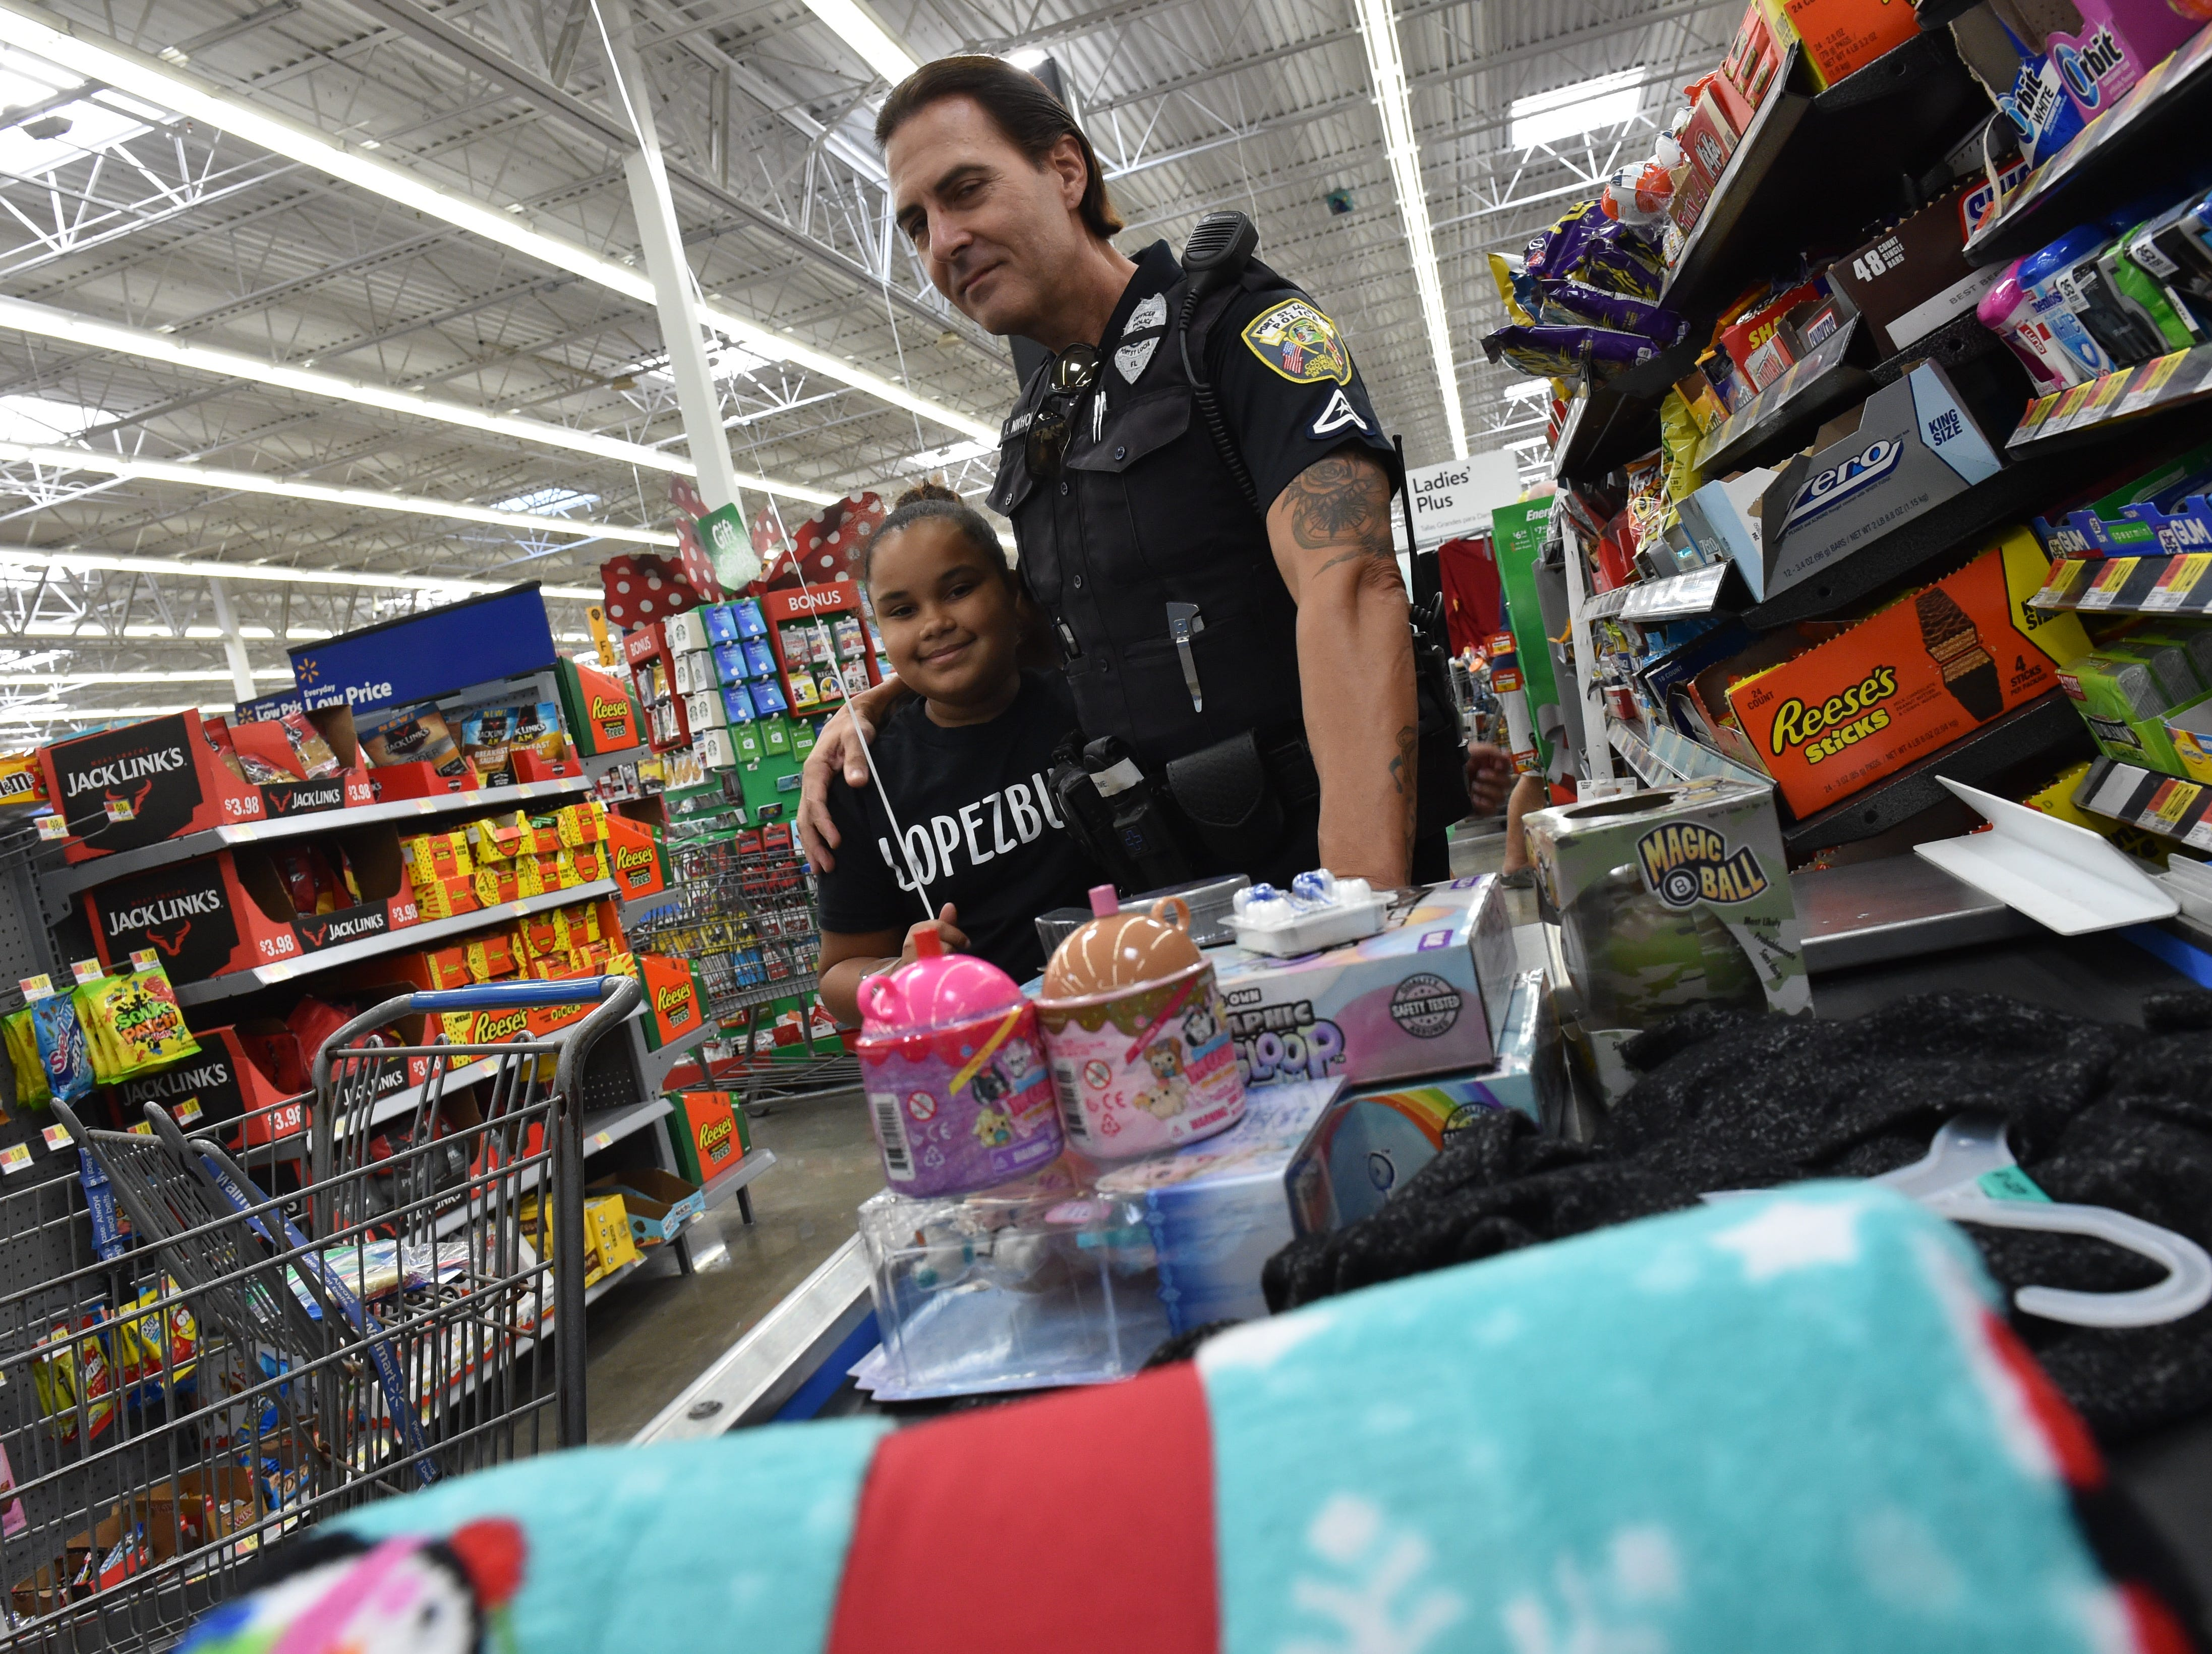 Port St. Lucie Police Department's 13th Annual Shop with a Cop event at the Walmart Supercenter at 10855 S. US Highway 1 in Port St. Lucie. Thirty three children from Port St. Lucie were treated to the Christmas shopping event, getting help from police officers and a $3,500 grant from Walmart and donations from private citizens, allowing the children to shop for Christmas gifts.